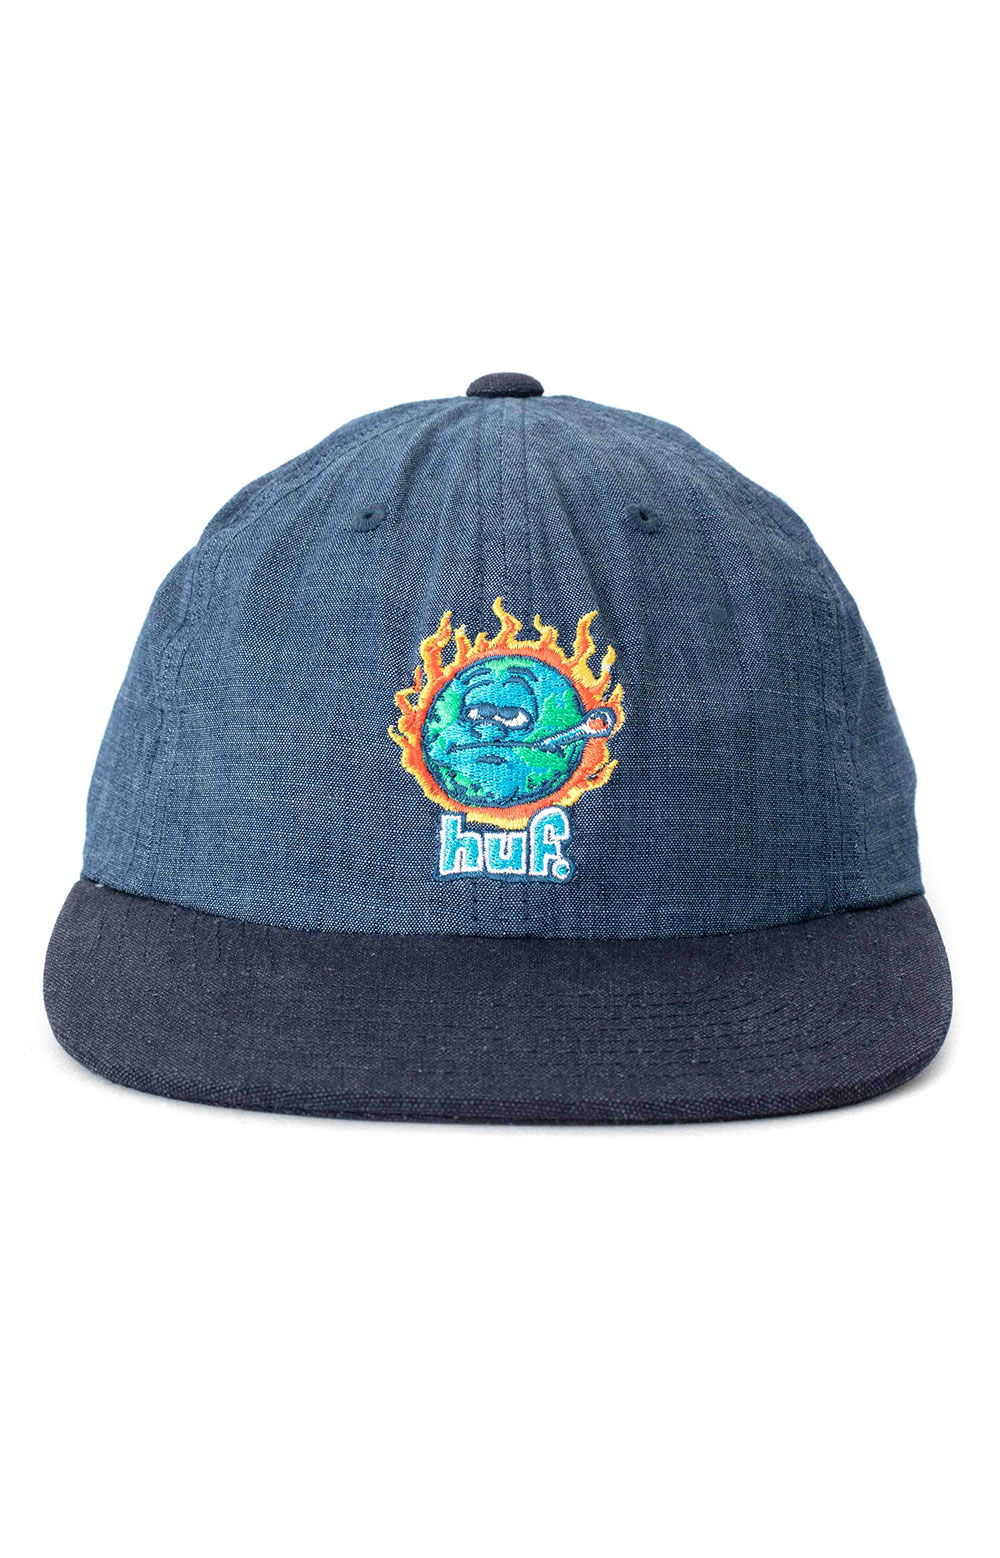 Global Warming 6 Panel Hat - Blue Chambray 2